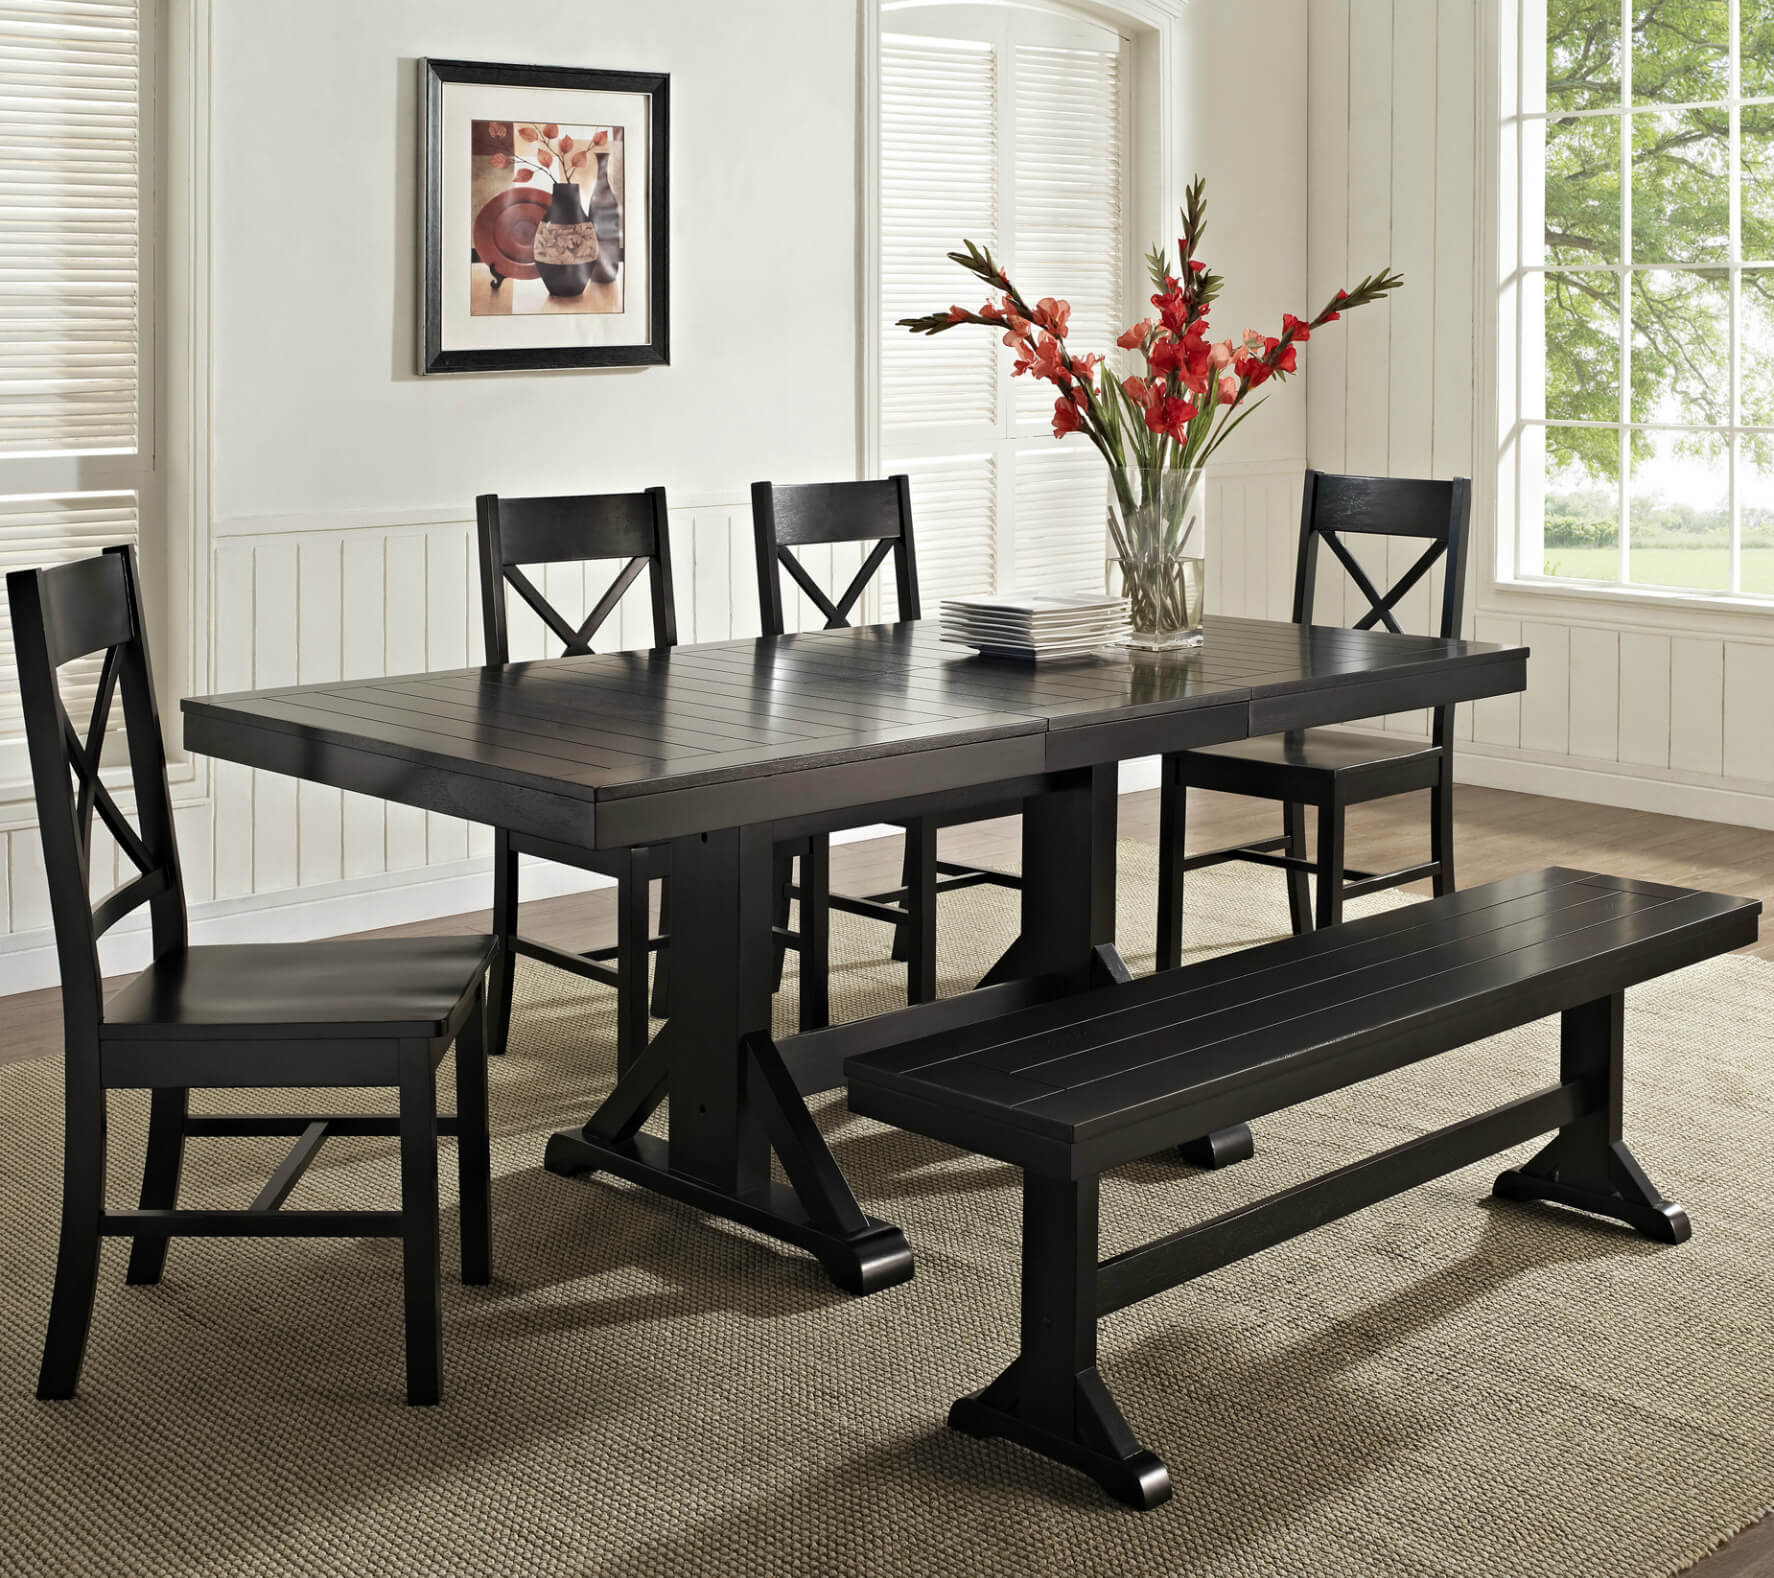 Dining Room Inexpensive Dining Room Table With Bench And: 26 Dining Room Sets (Big And Small) With Bench Seating (2019